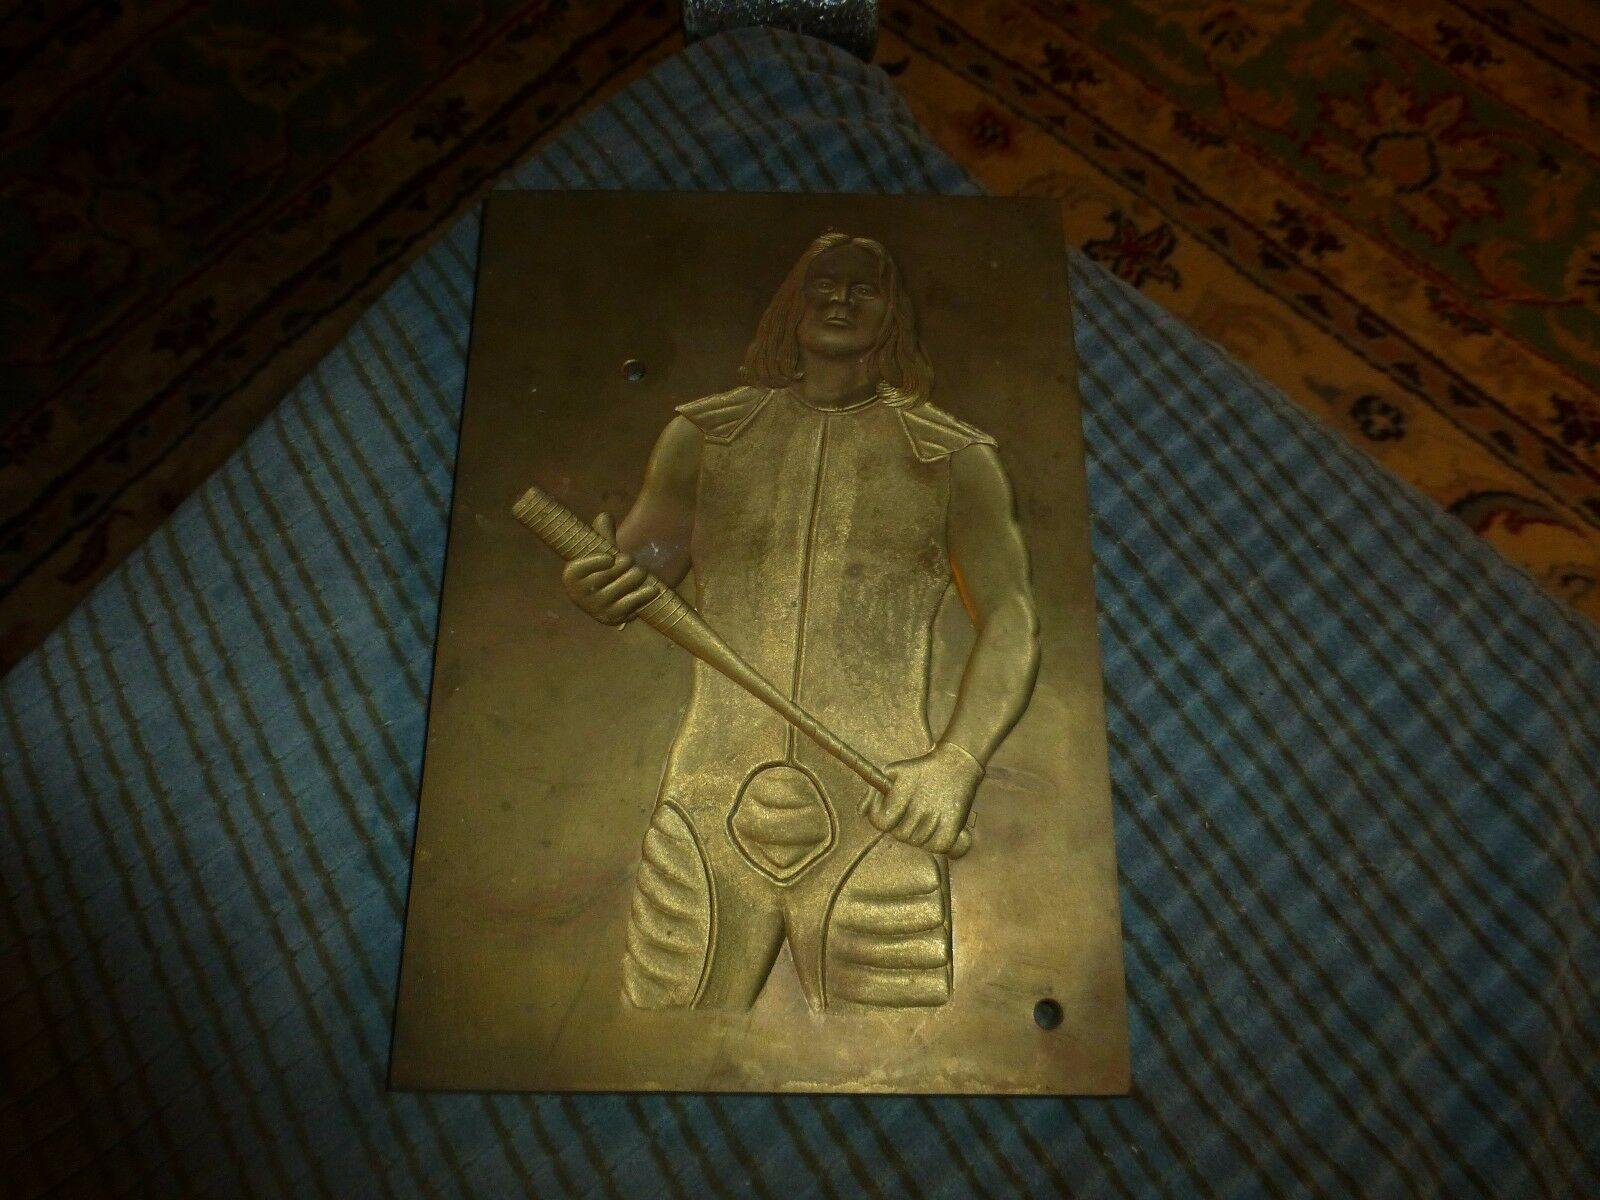 STING W/ BASEBALL BAT Laser Etched Brass Plaque WWE WRESTLER Rare Wall Hanging